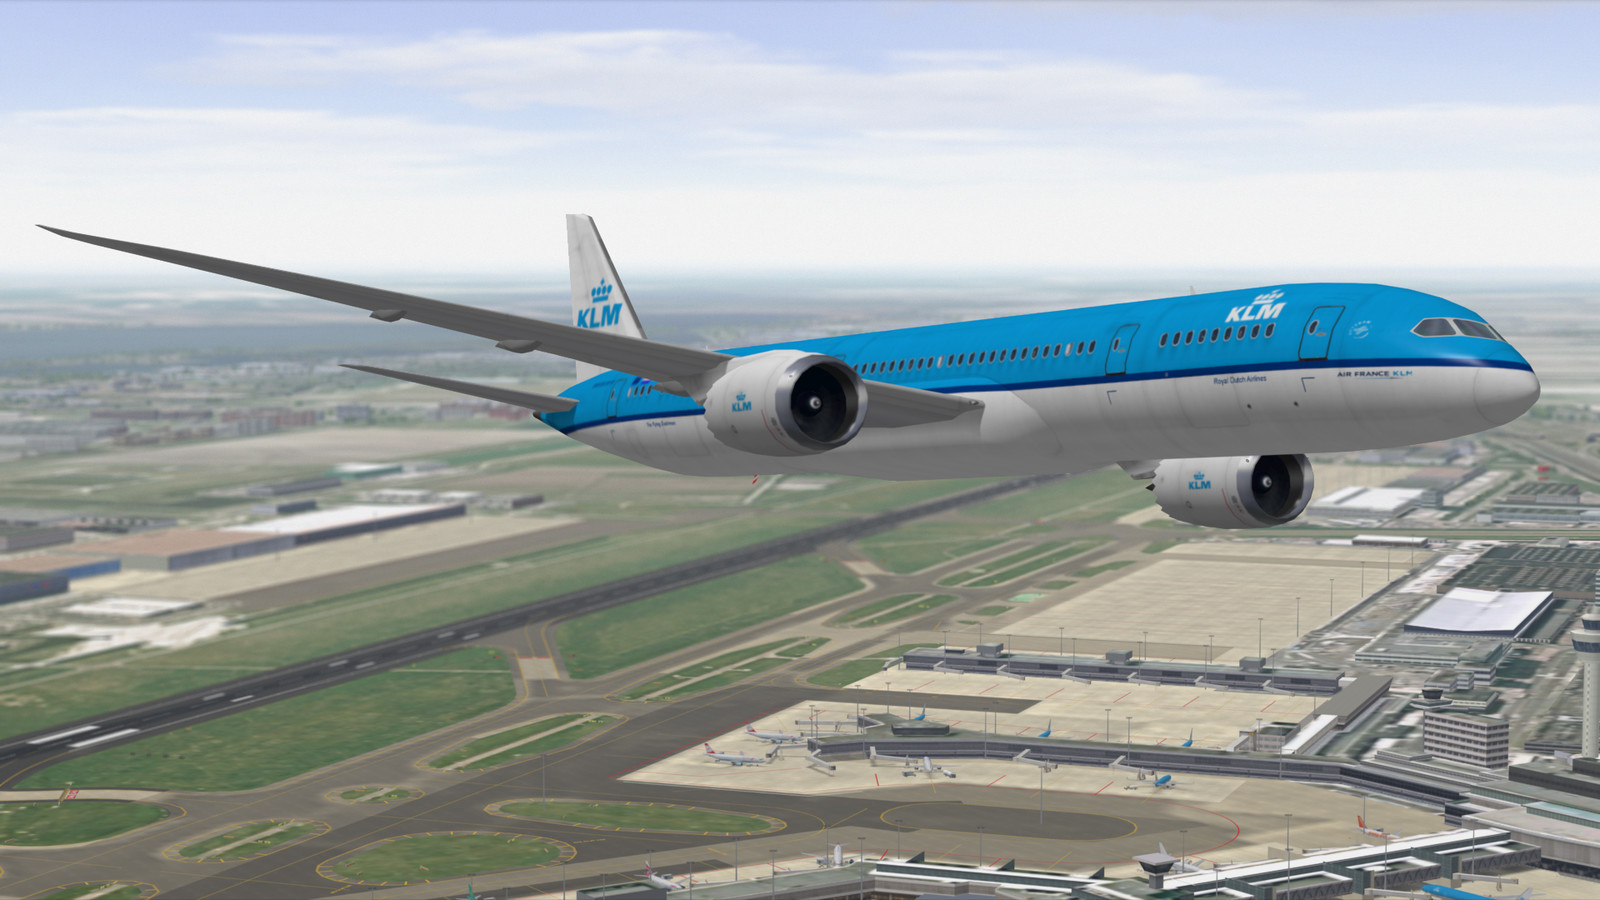 KLM Boeing 787 over Amsterdam Schiphol airport